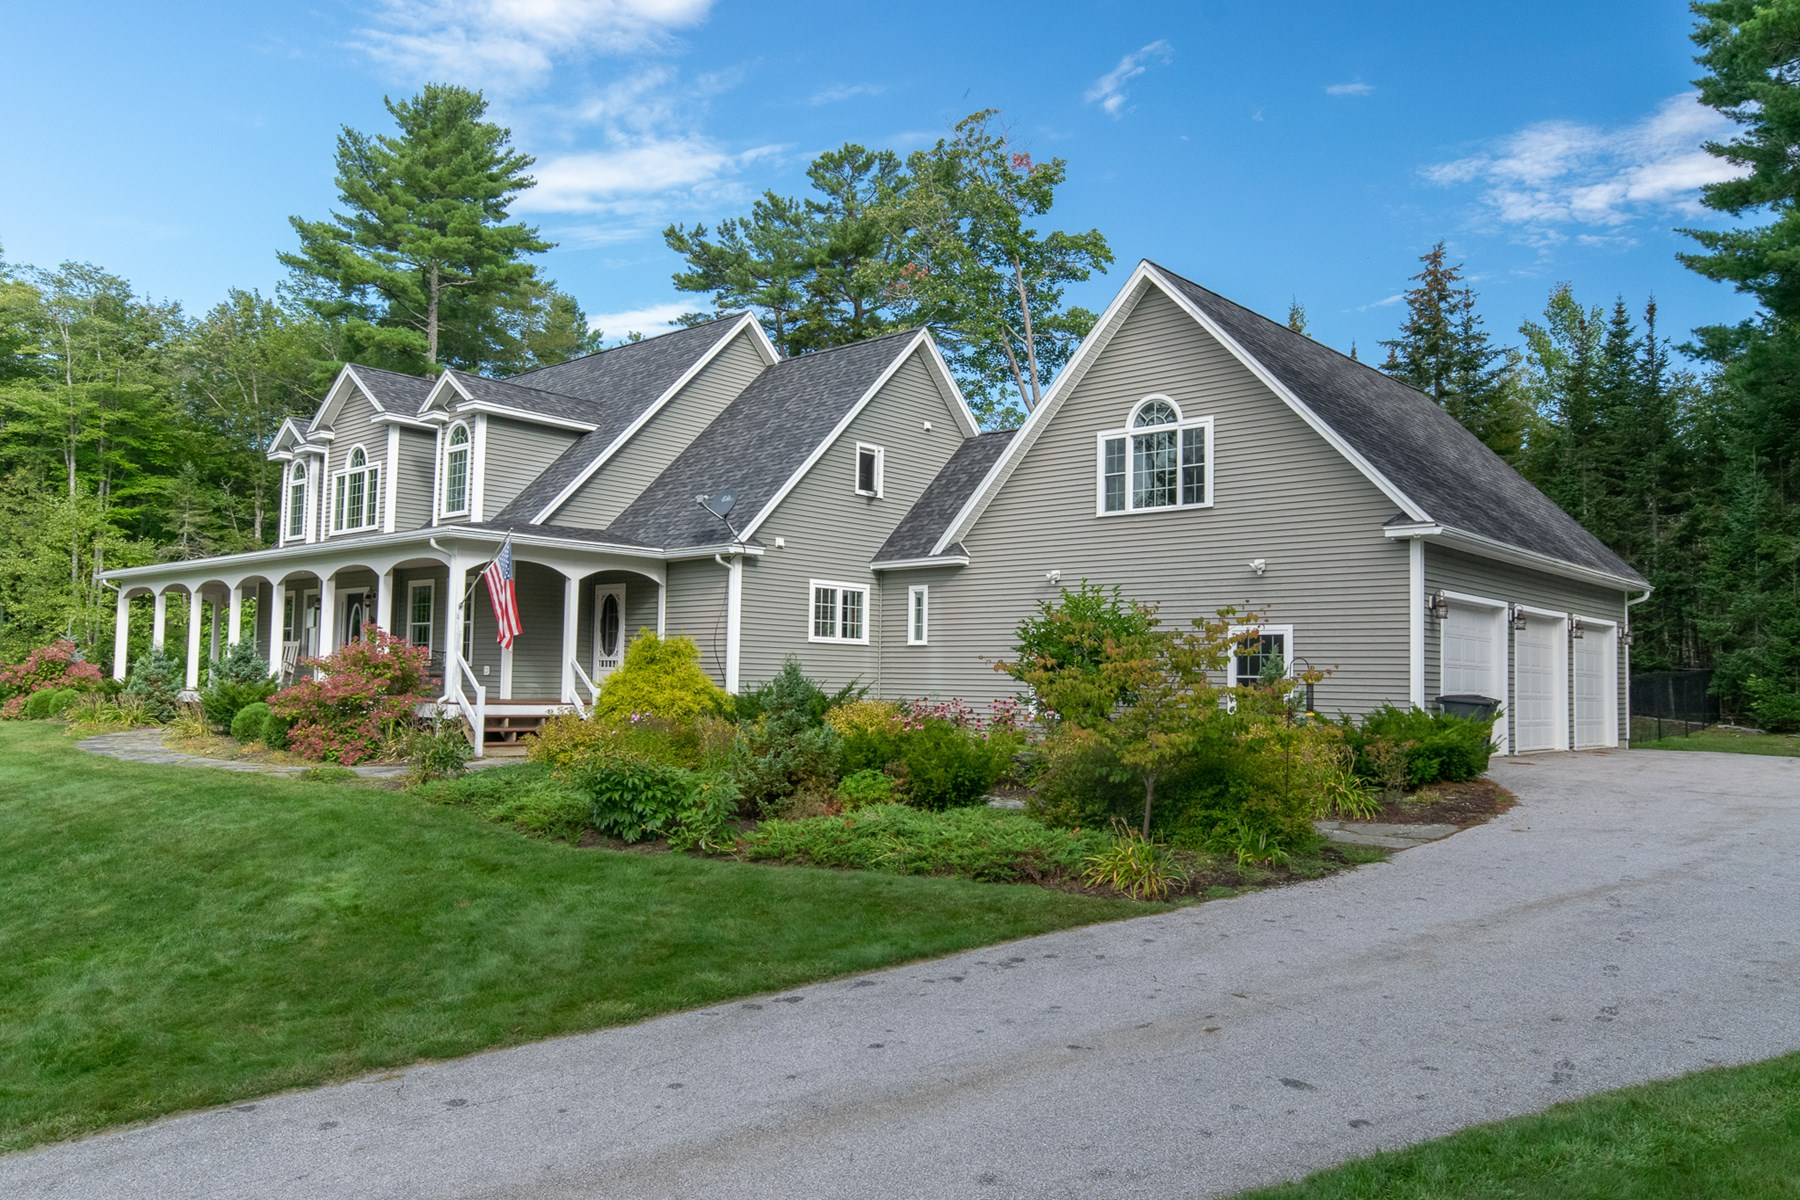 Luxury Country Home For Sale in Hampden, Maine